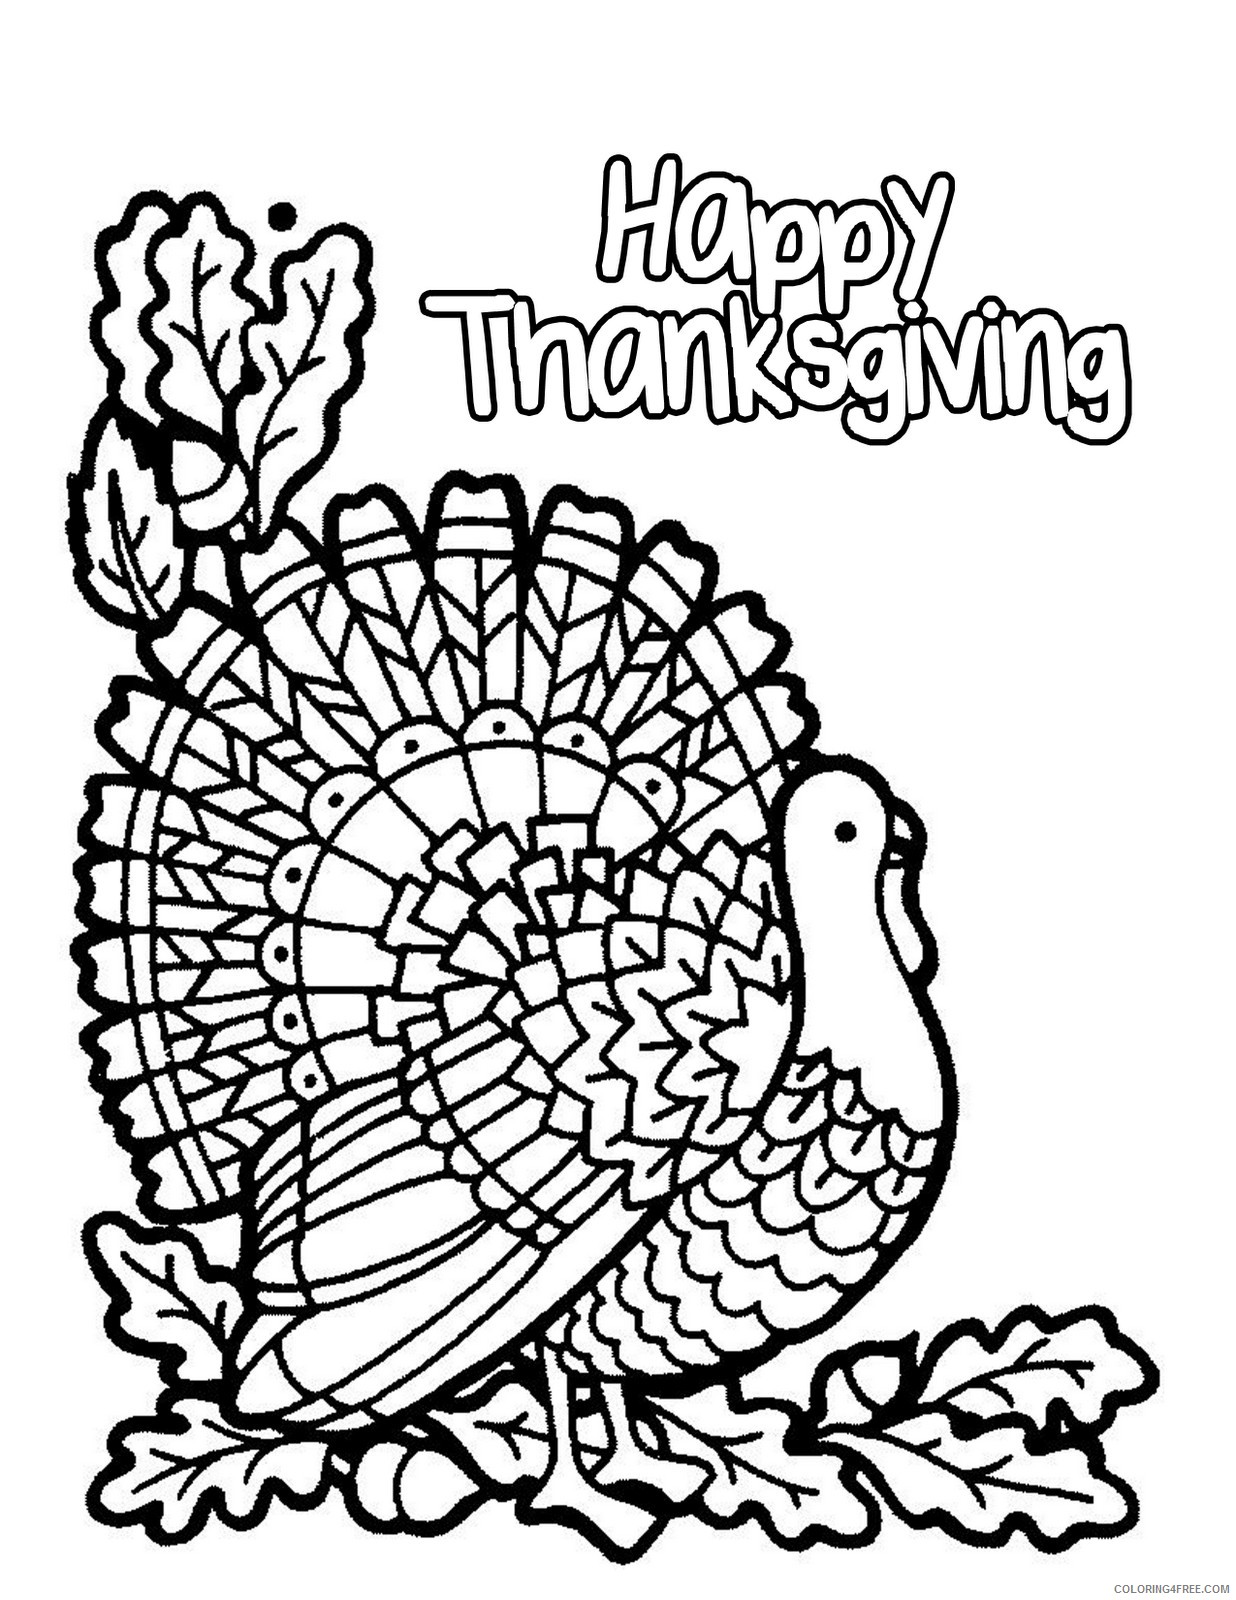 november coloring pages happy thanksgiving Coloring4free